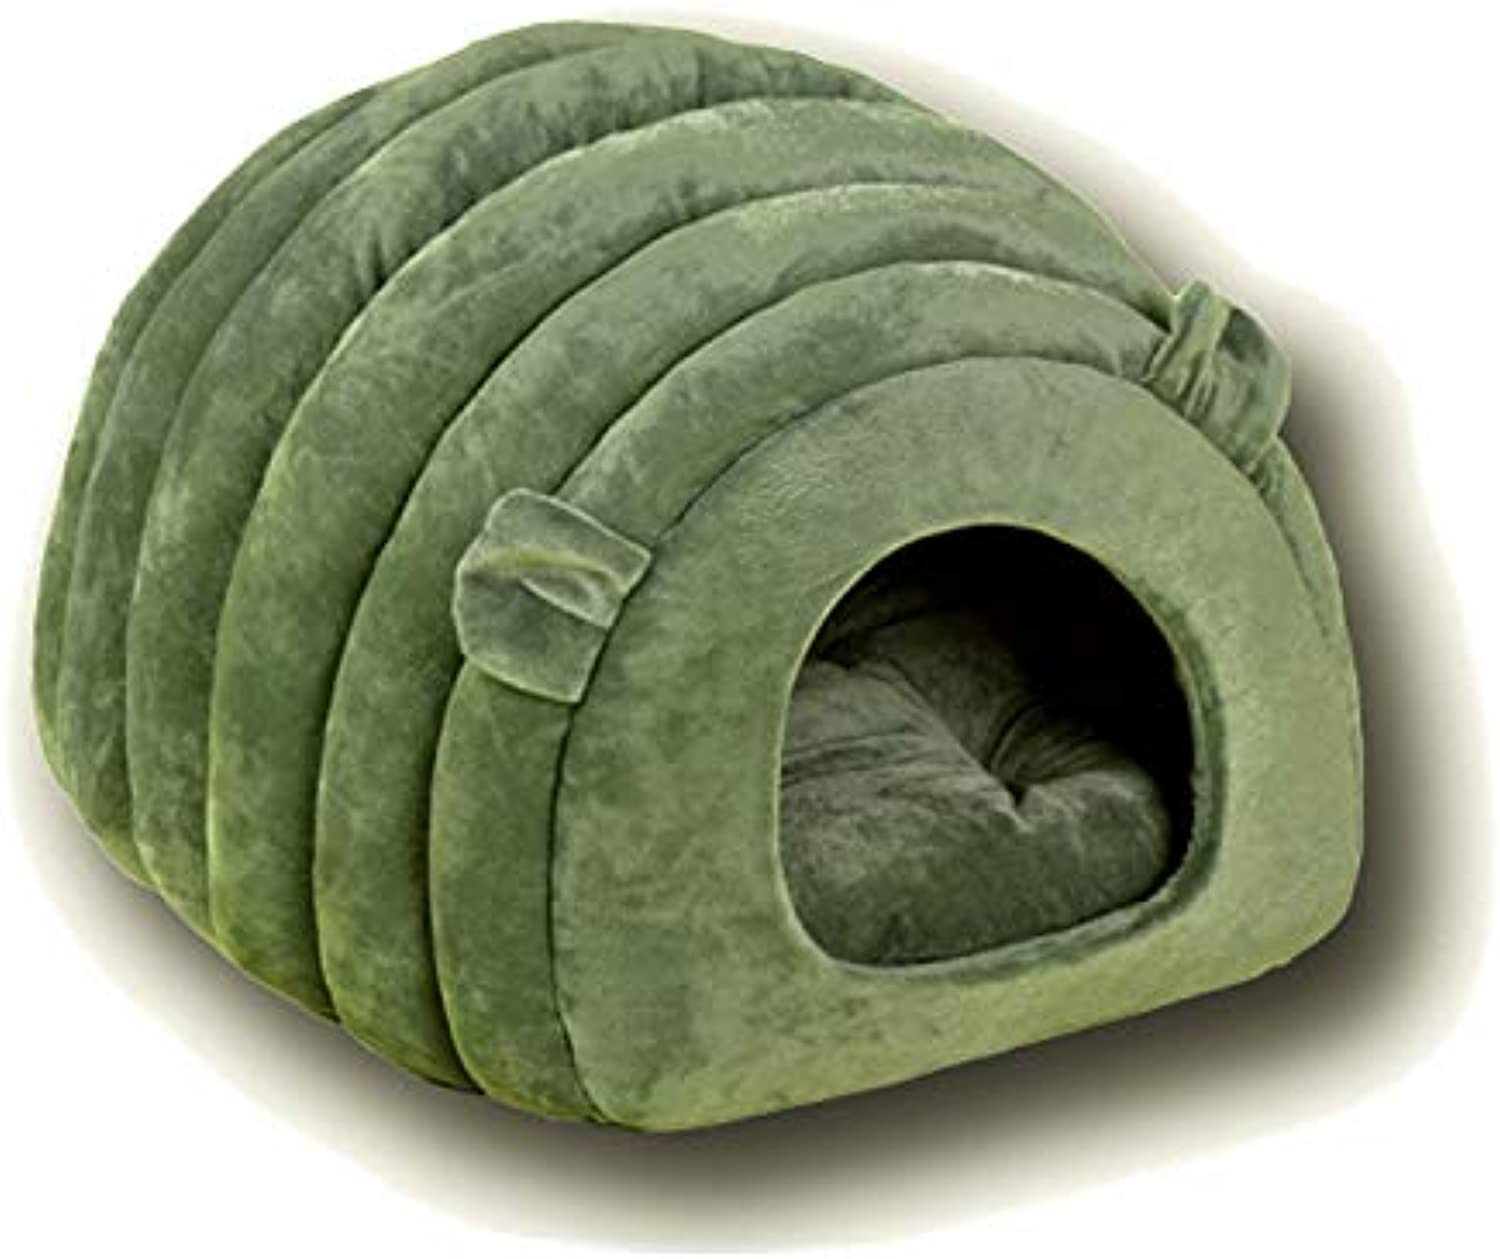 Cat Nest, Autumn and Winter Cat Litter SemiEnclosed Cat House Folding Kennel Pet Warmth Supplies (color   Green)